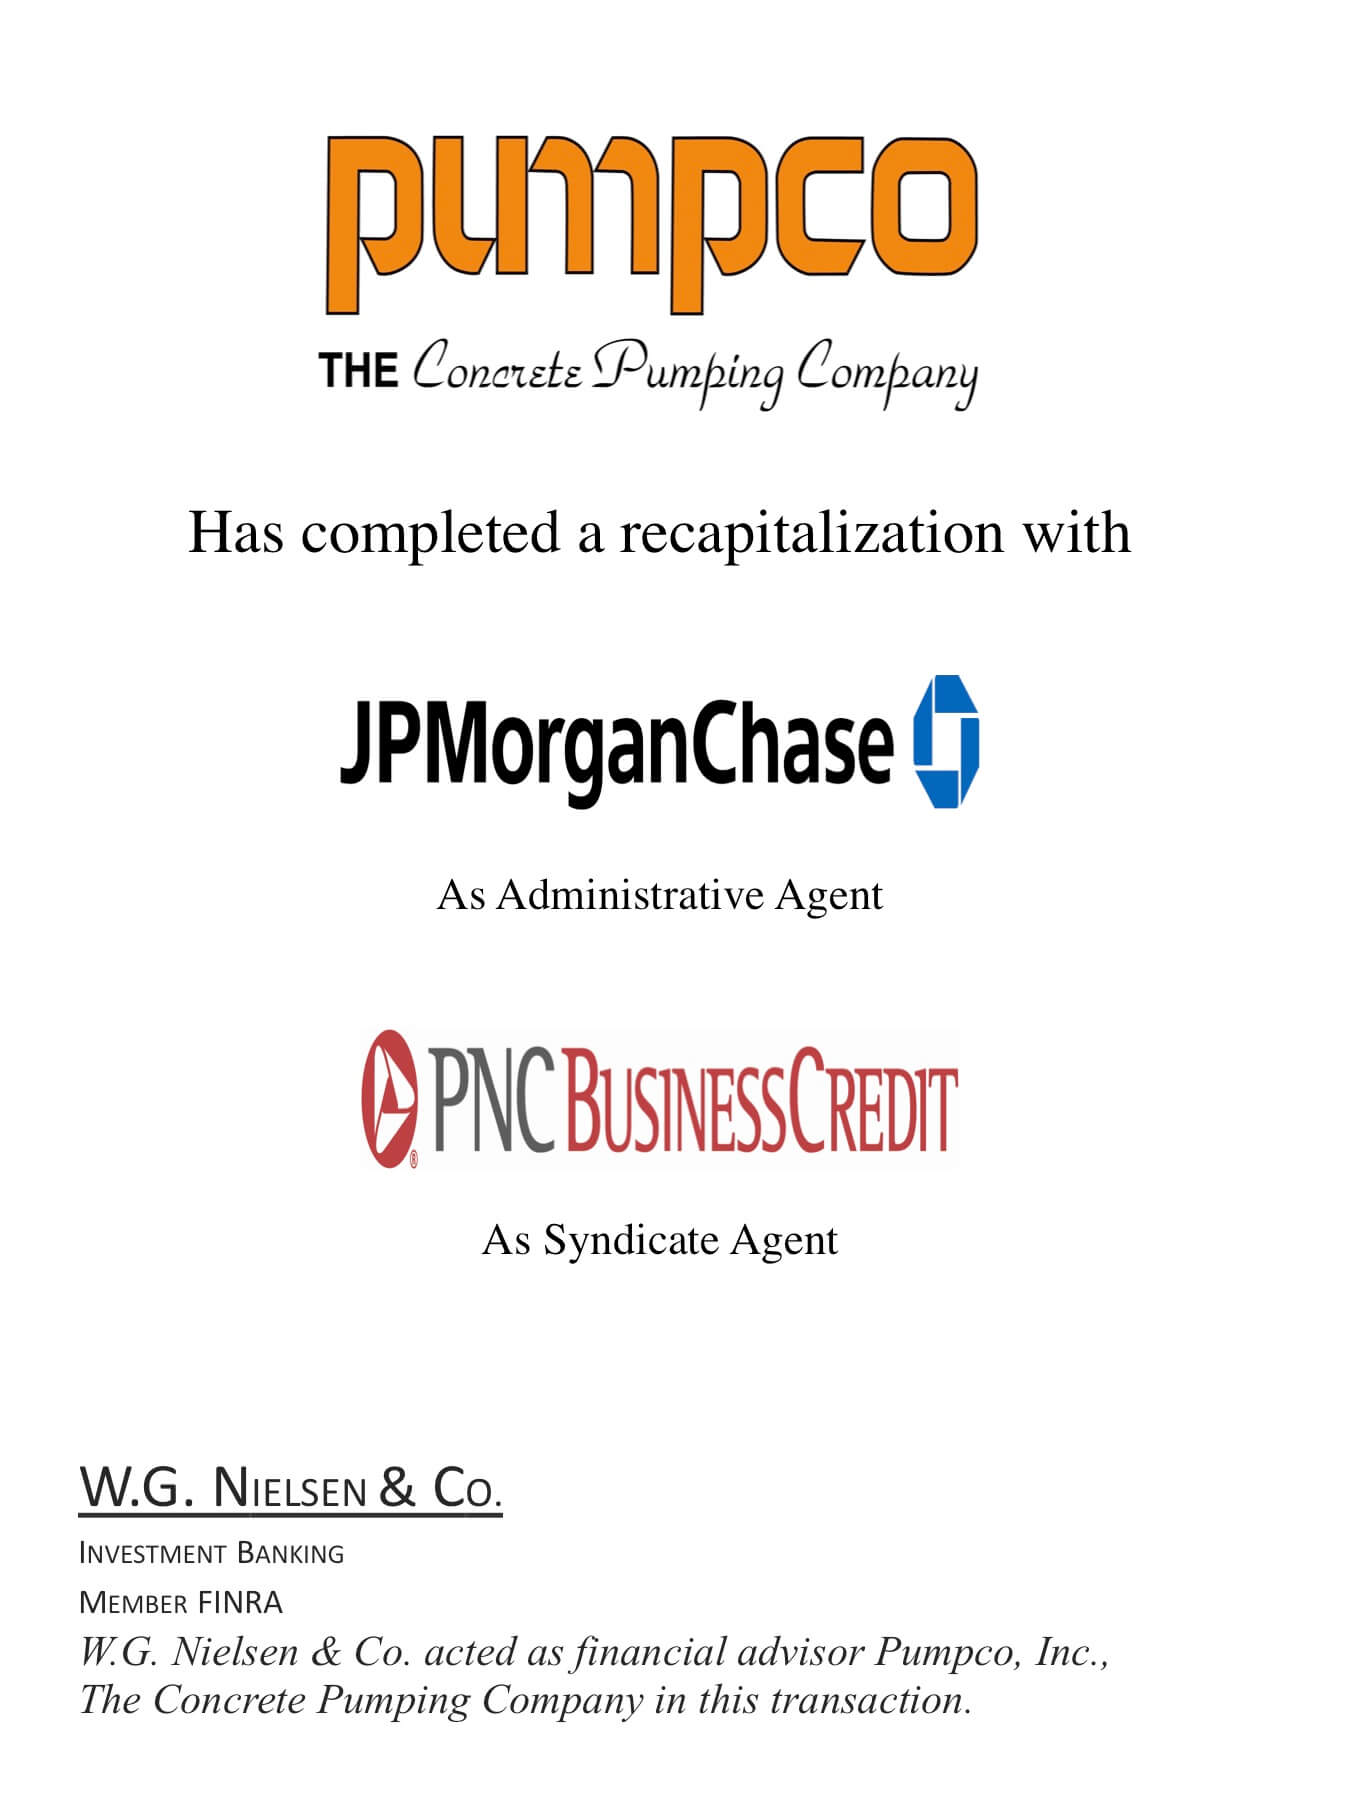 pumpco investment banking transaction